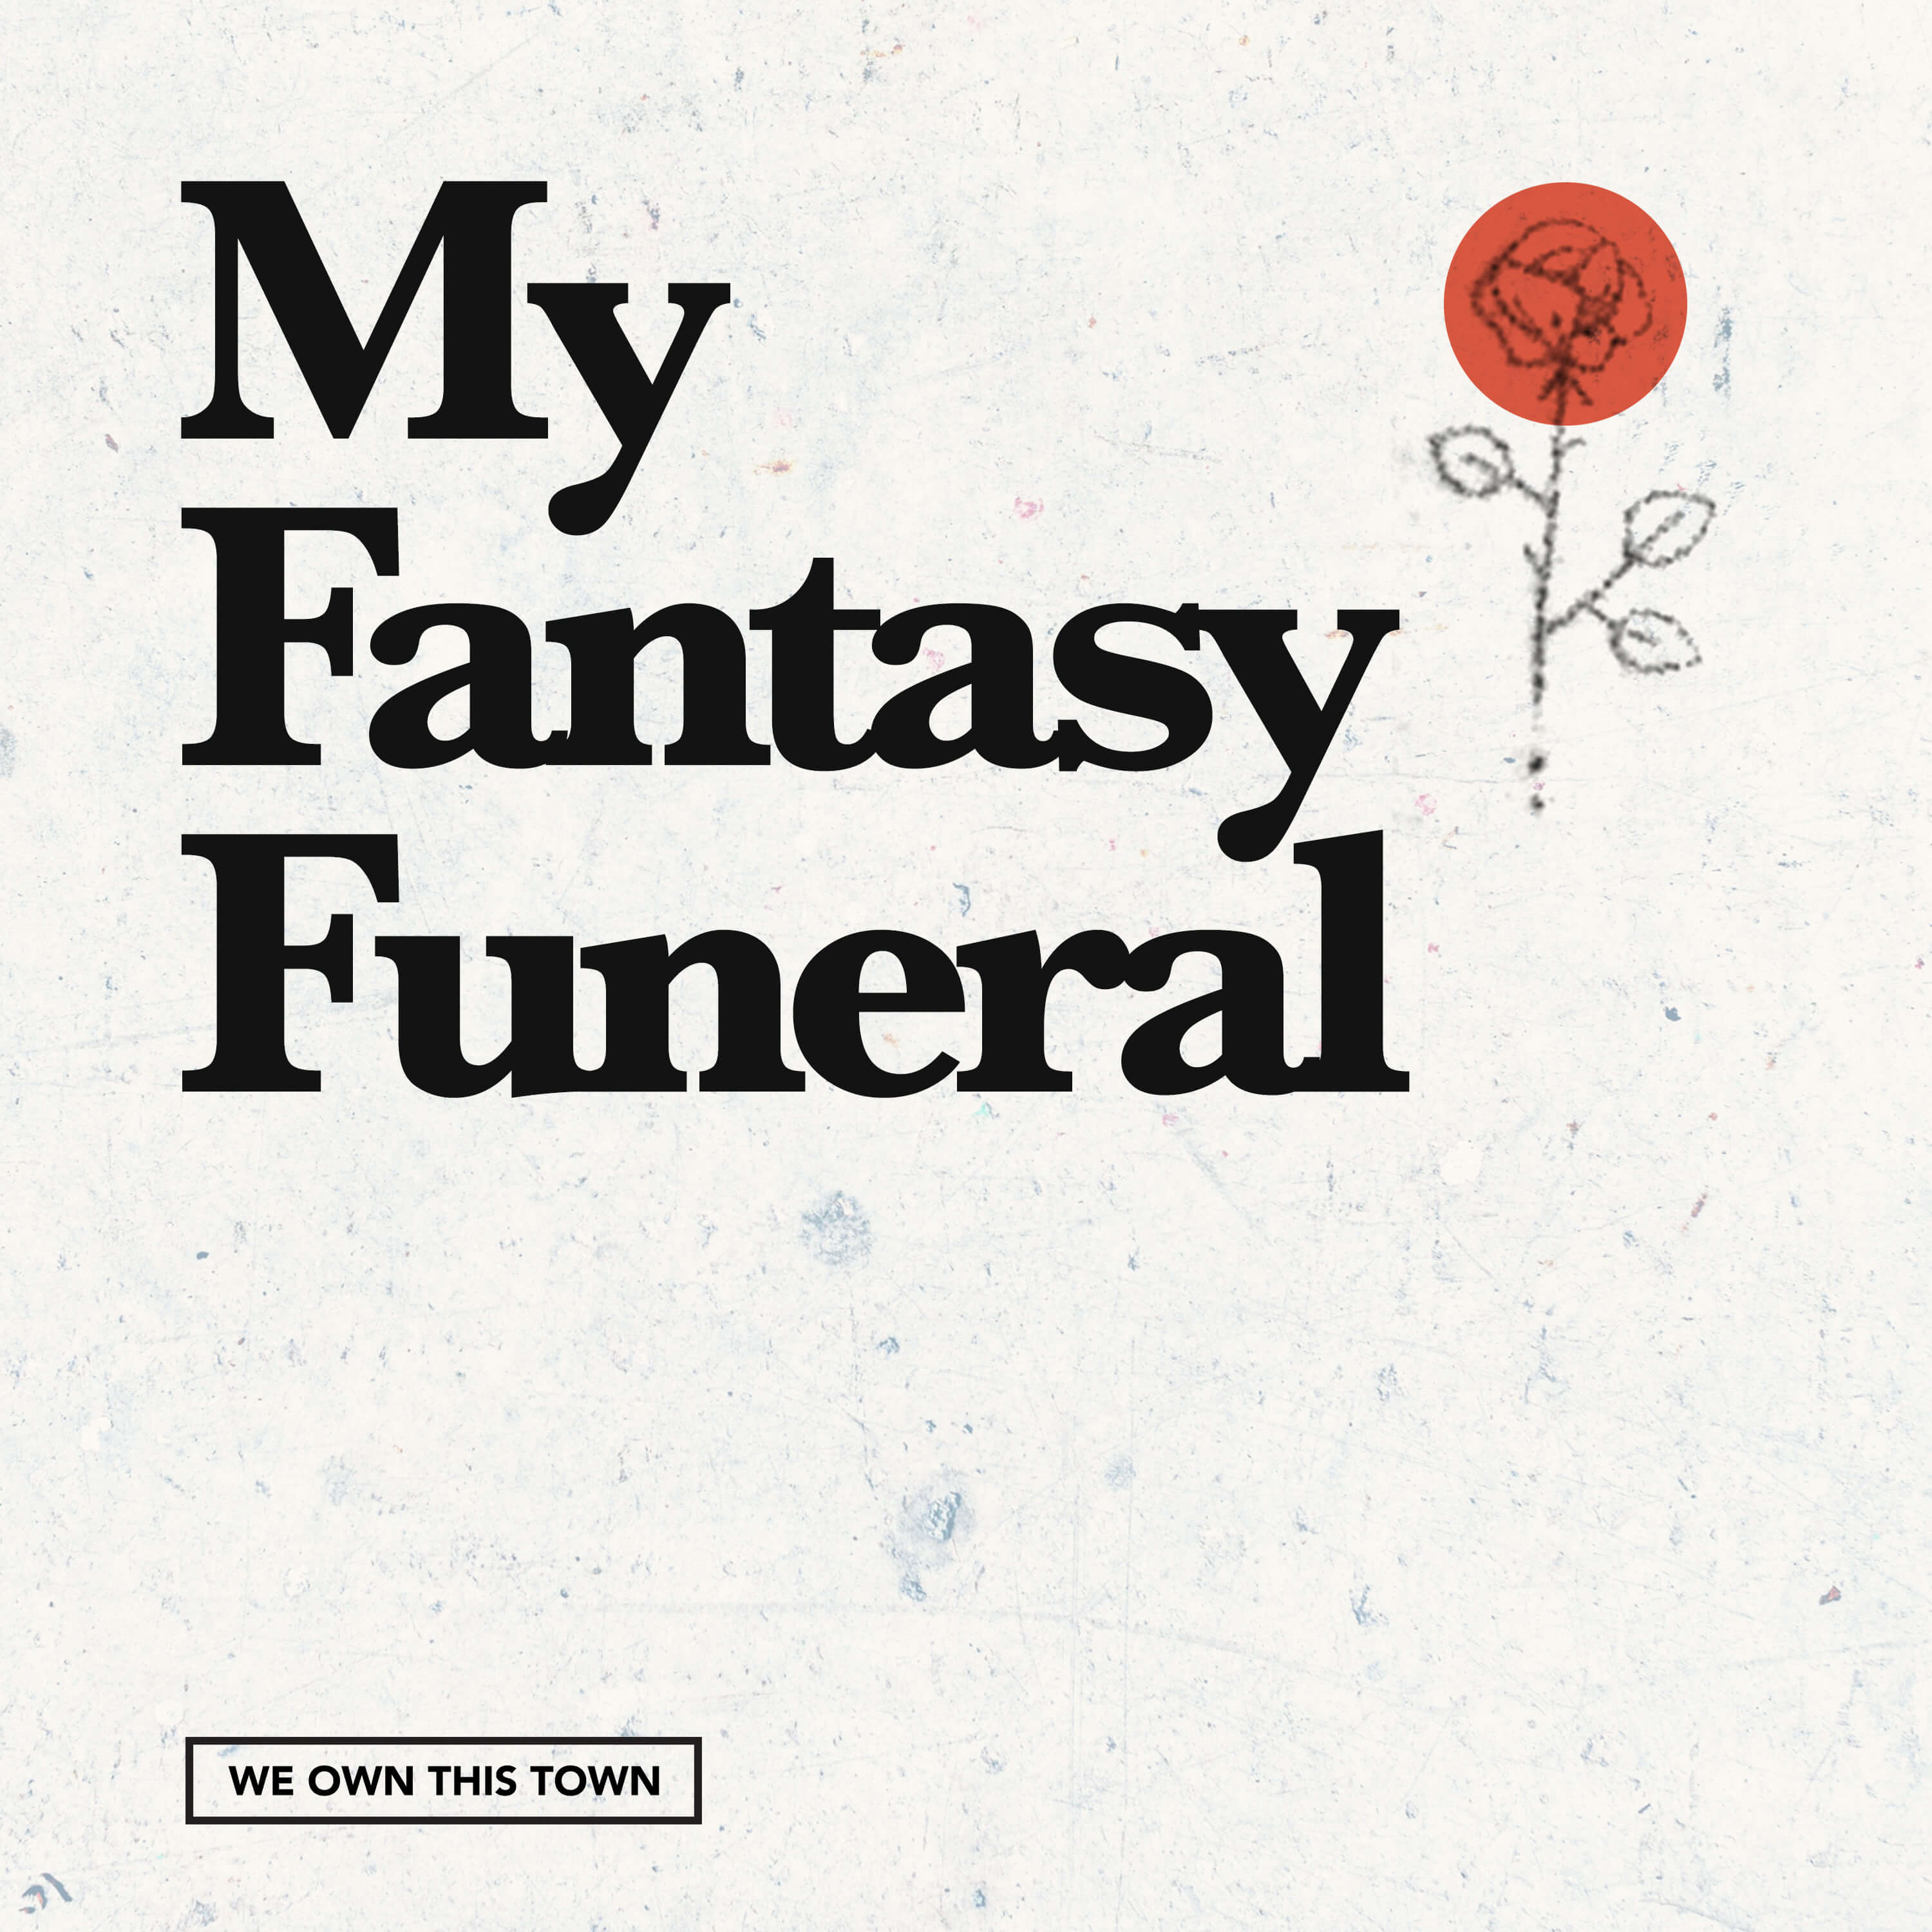 My Fantasy Funeral